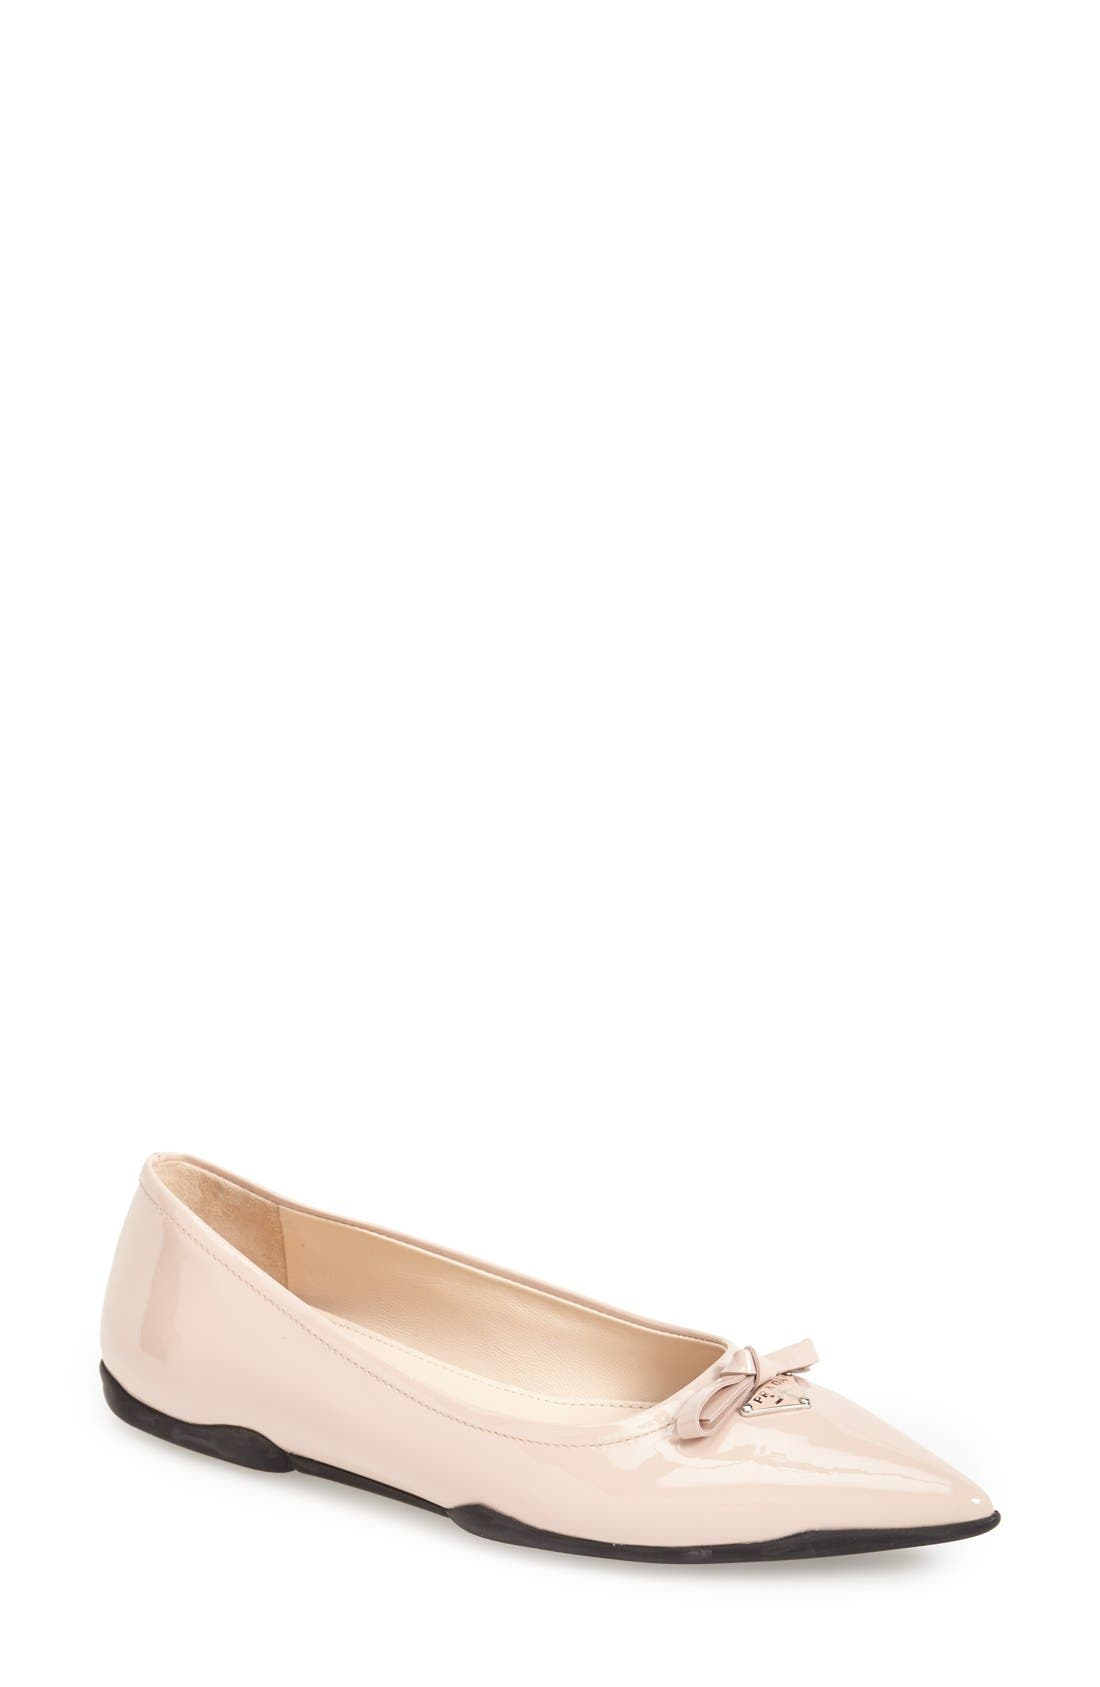 PRADA Pointy Toe Flat